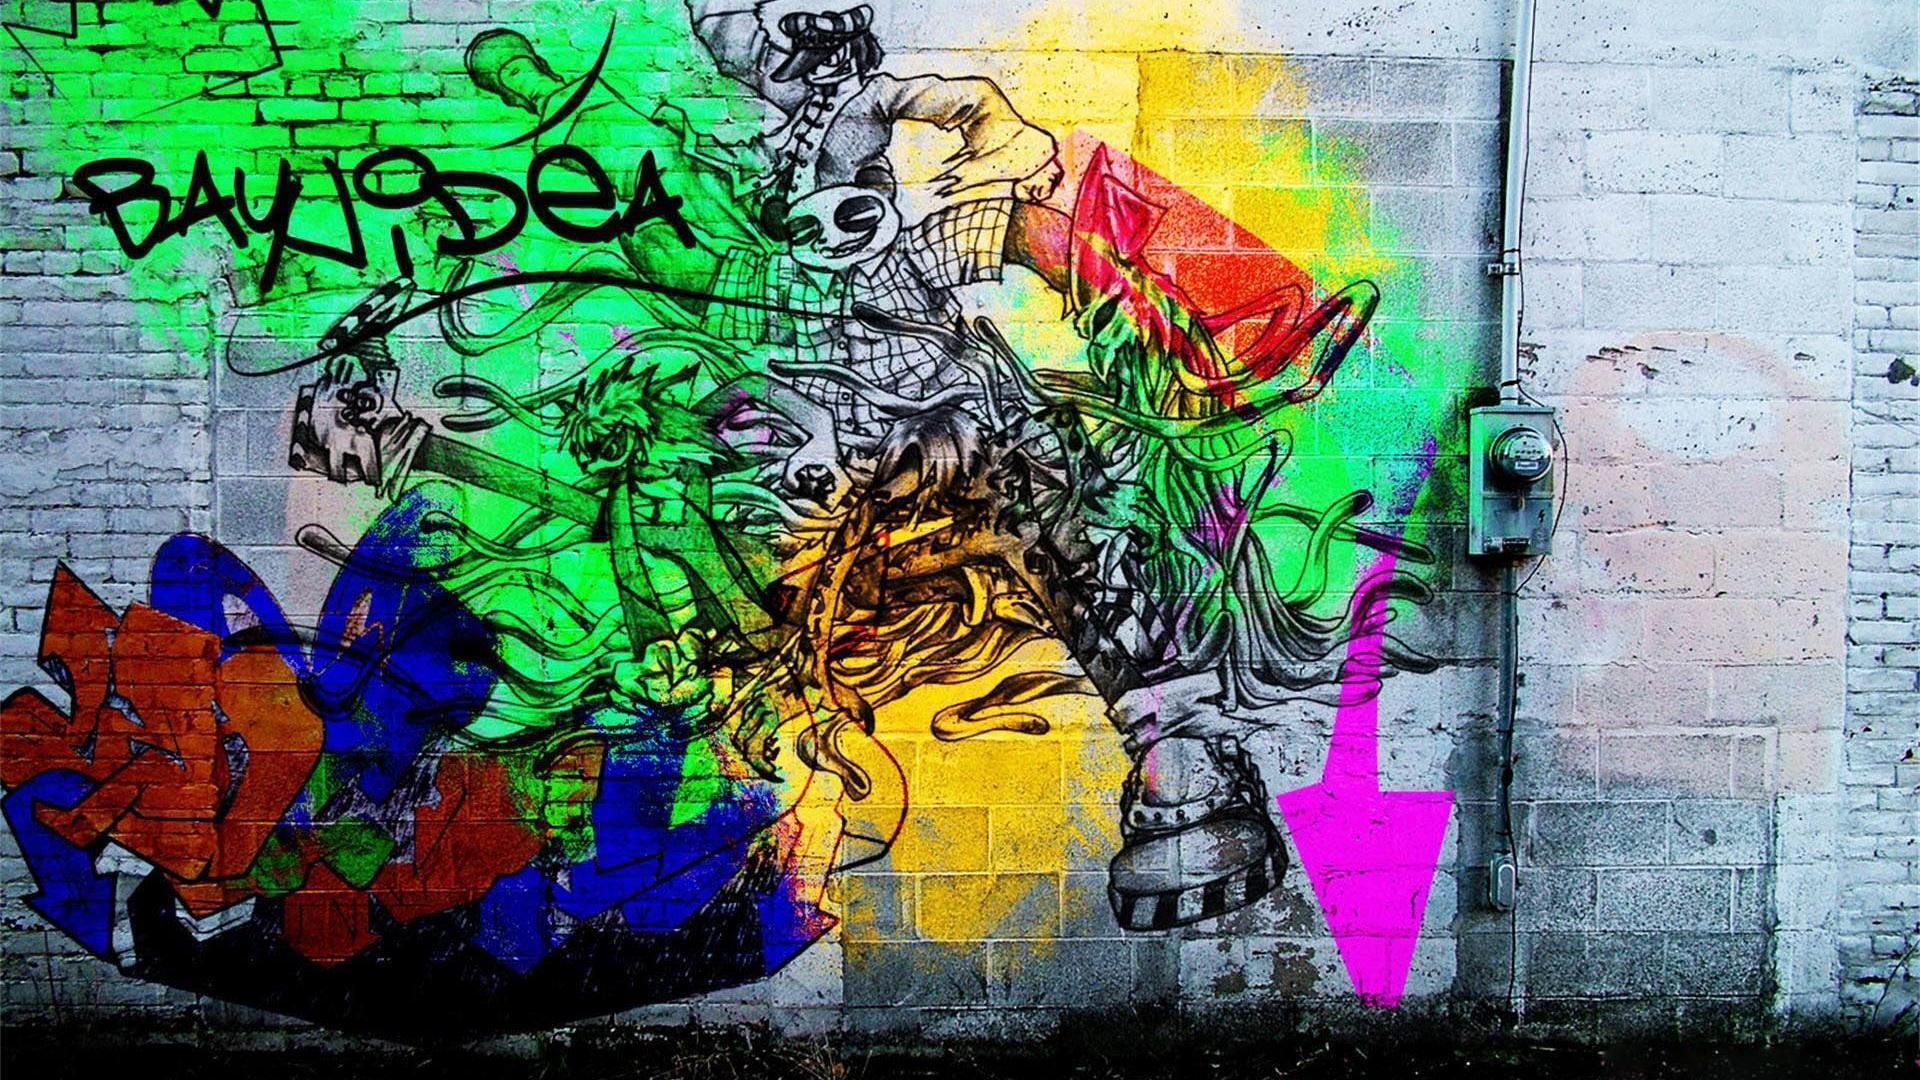 graffiti wallpaper skull hd - photo #29